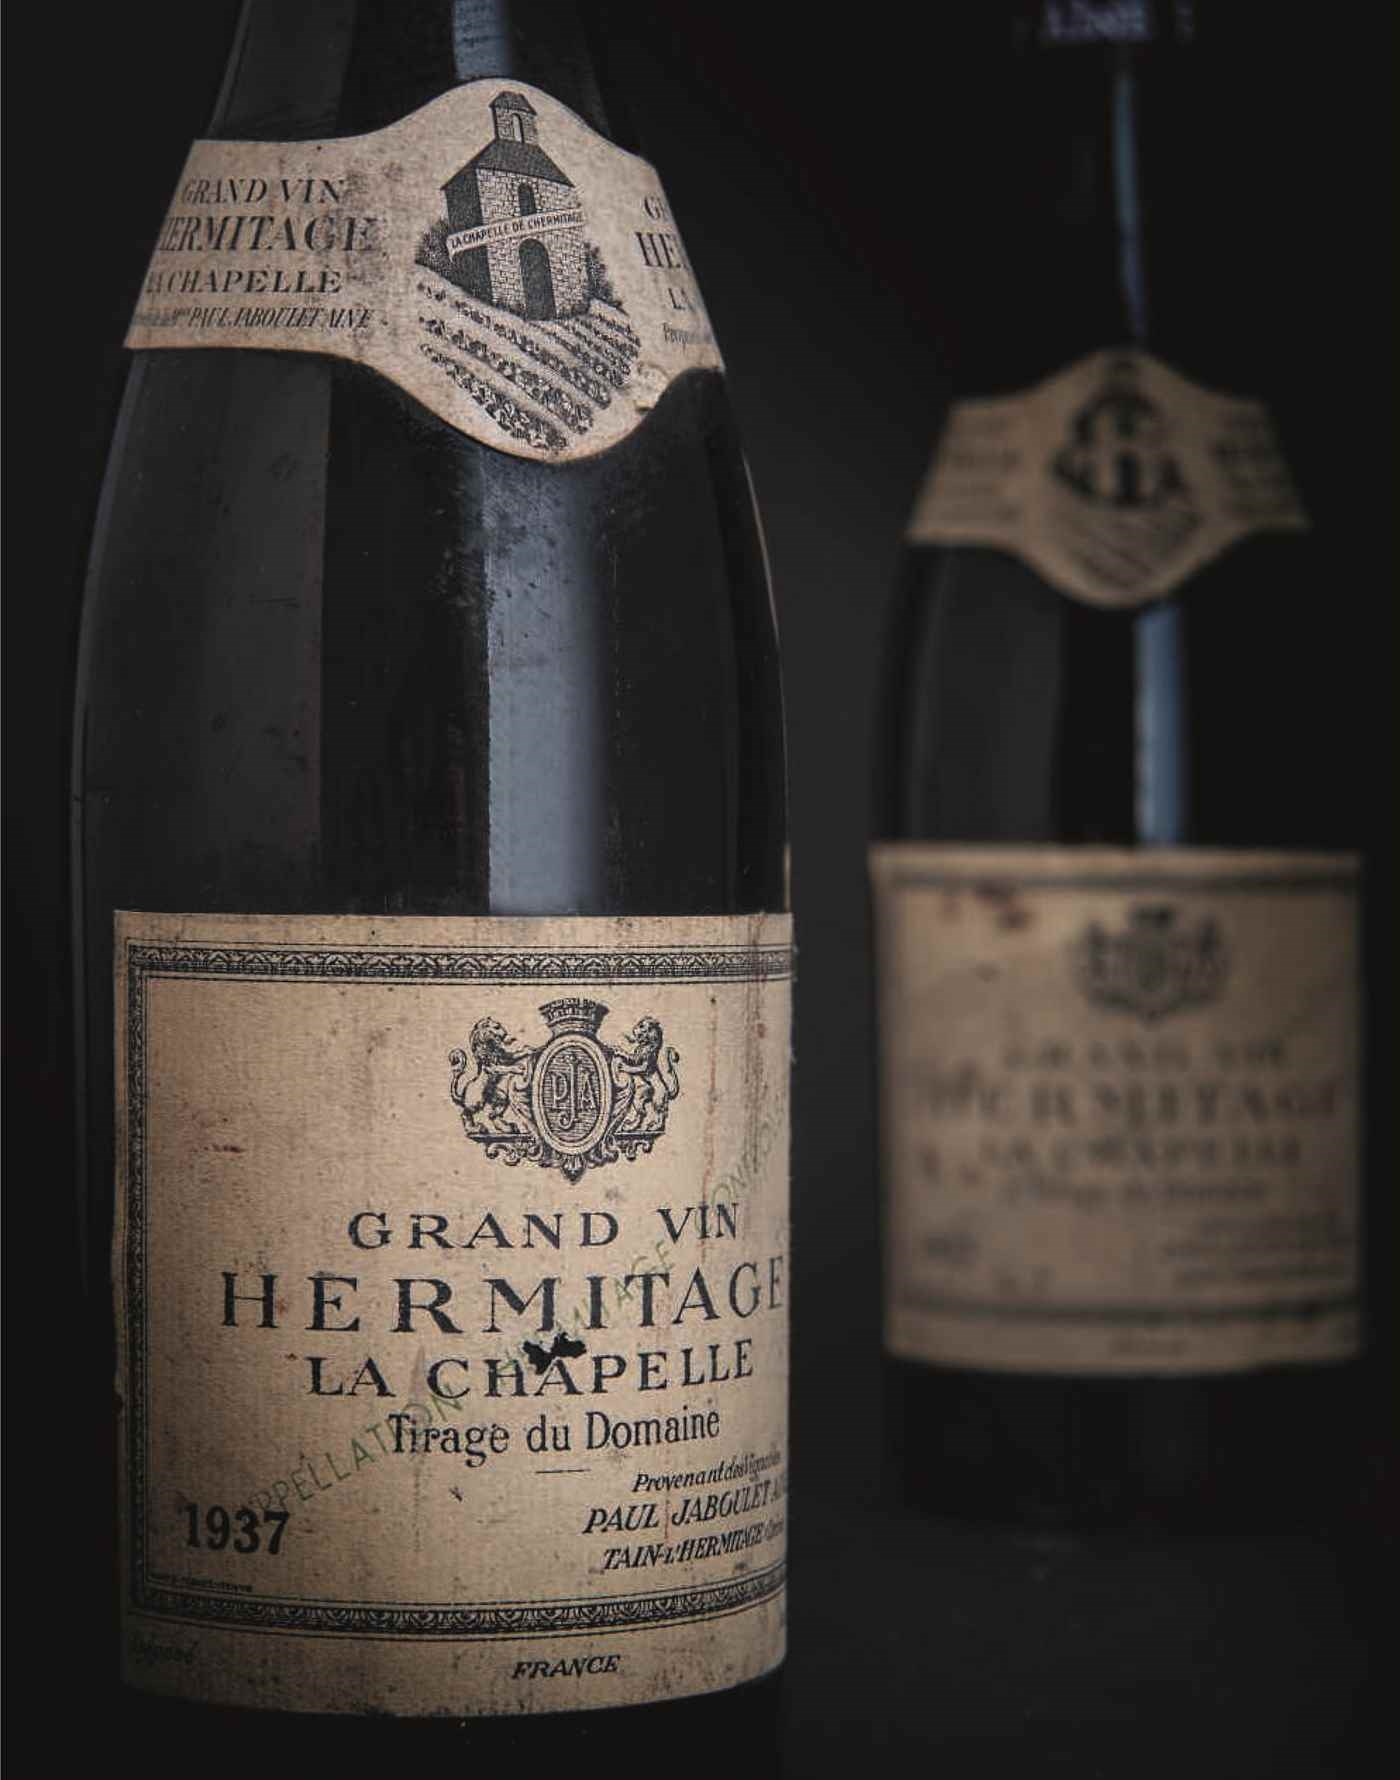 Finest and Rarest Wines featur auction at Christies